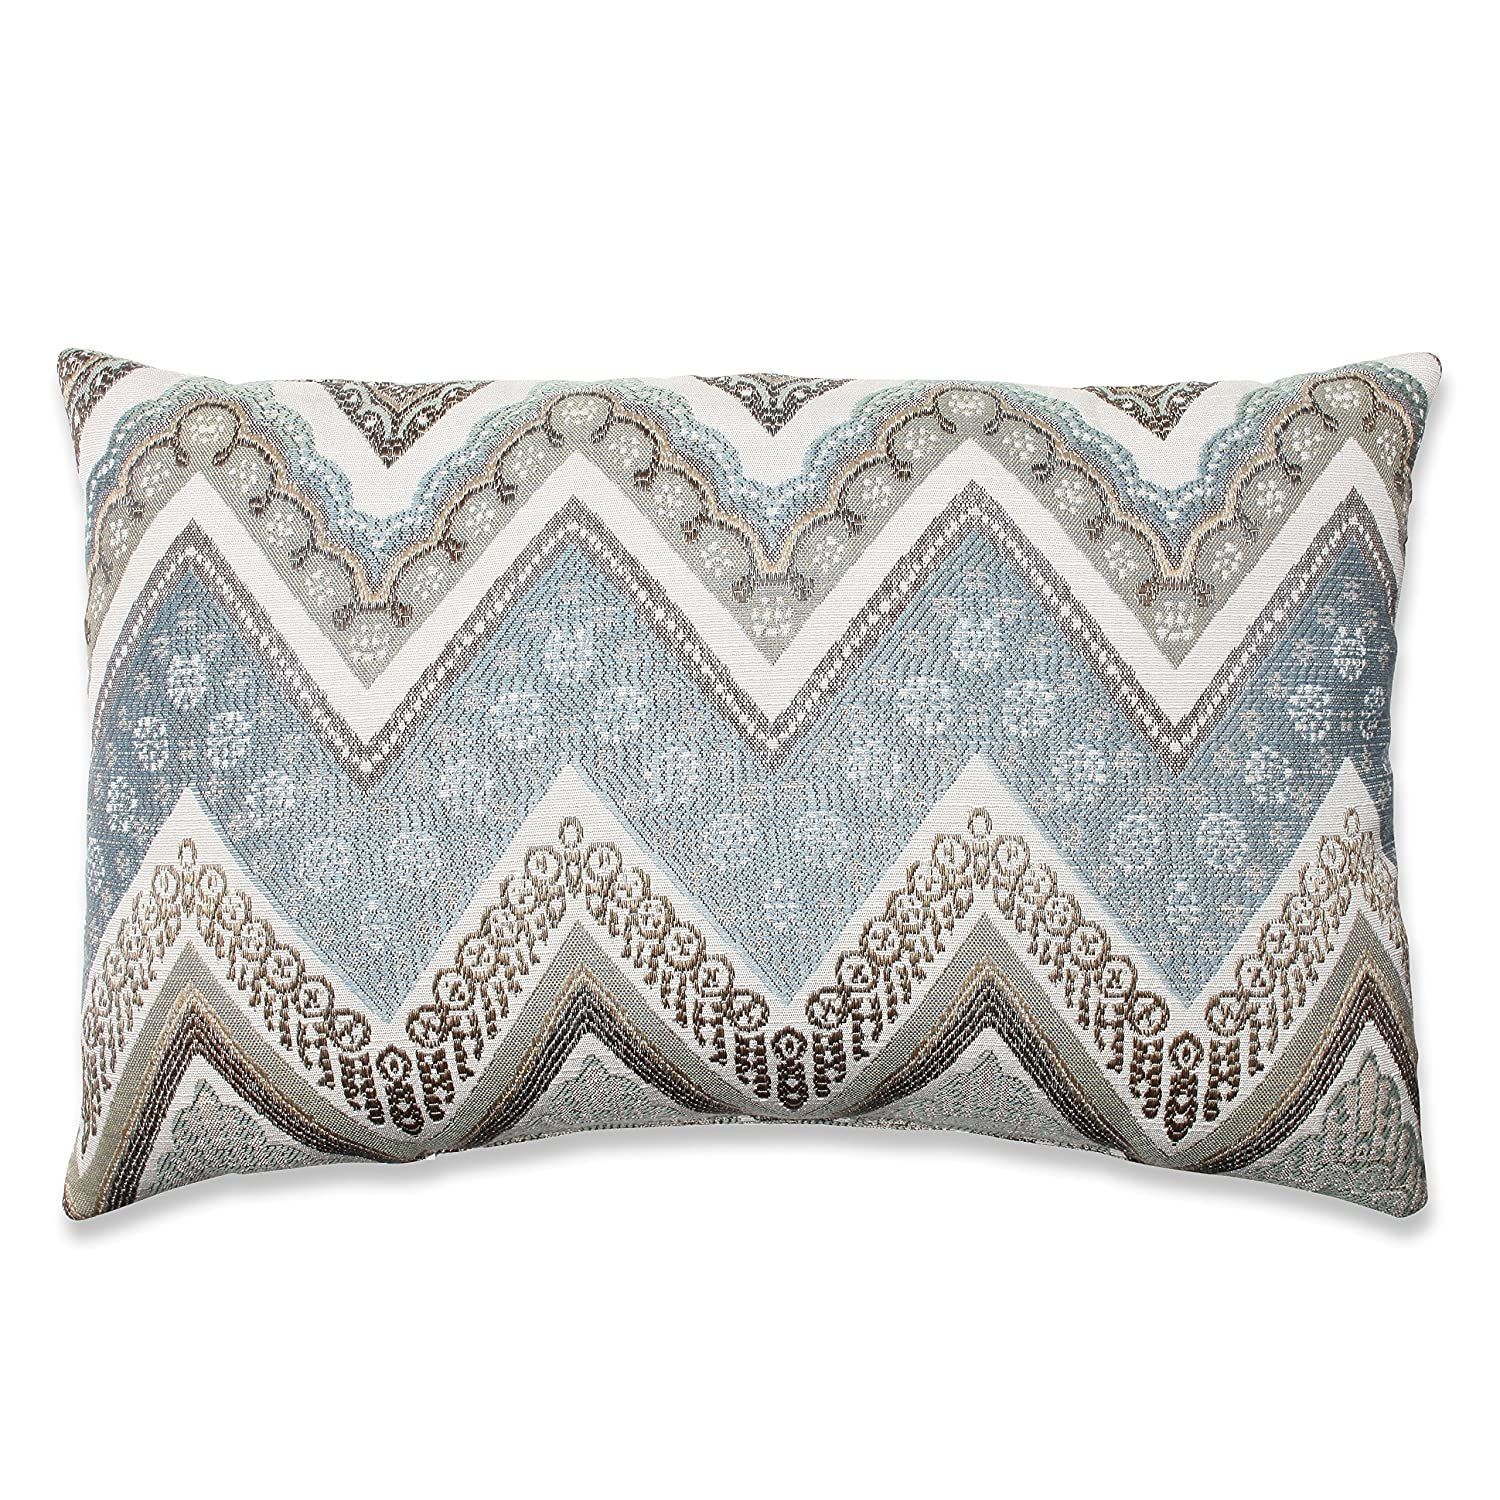 Pillow Perfect Cottage Throw Pillow, 16.5-Inch, Mineral Inc. 573298